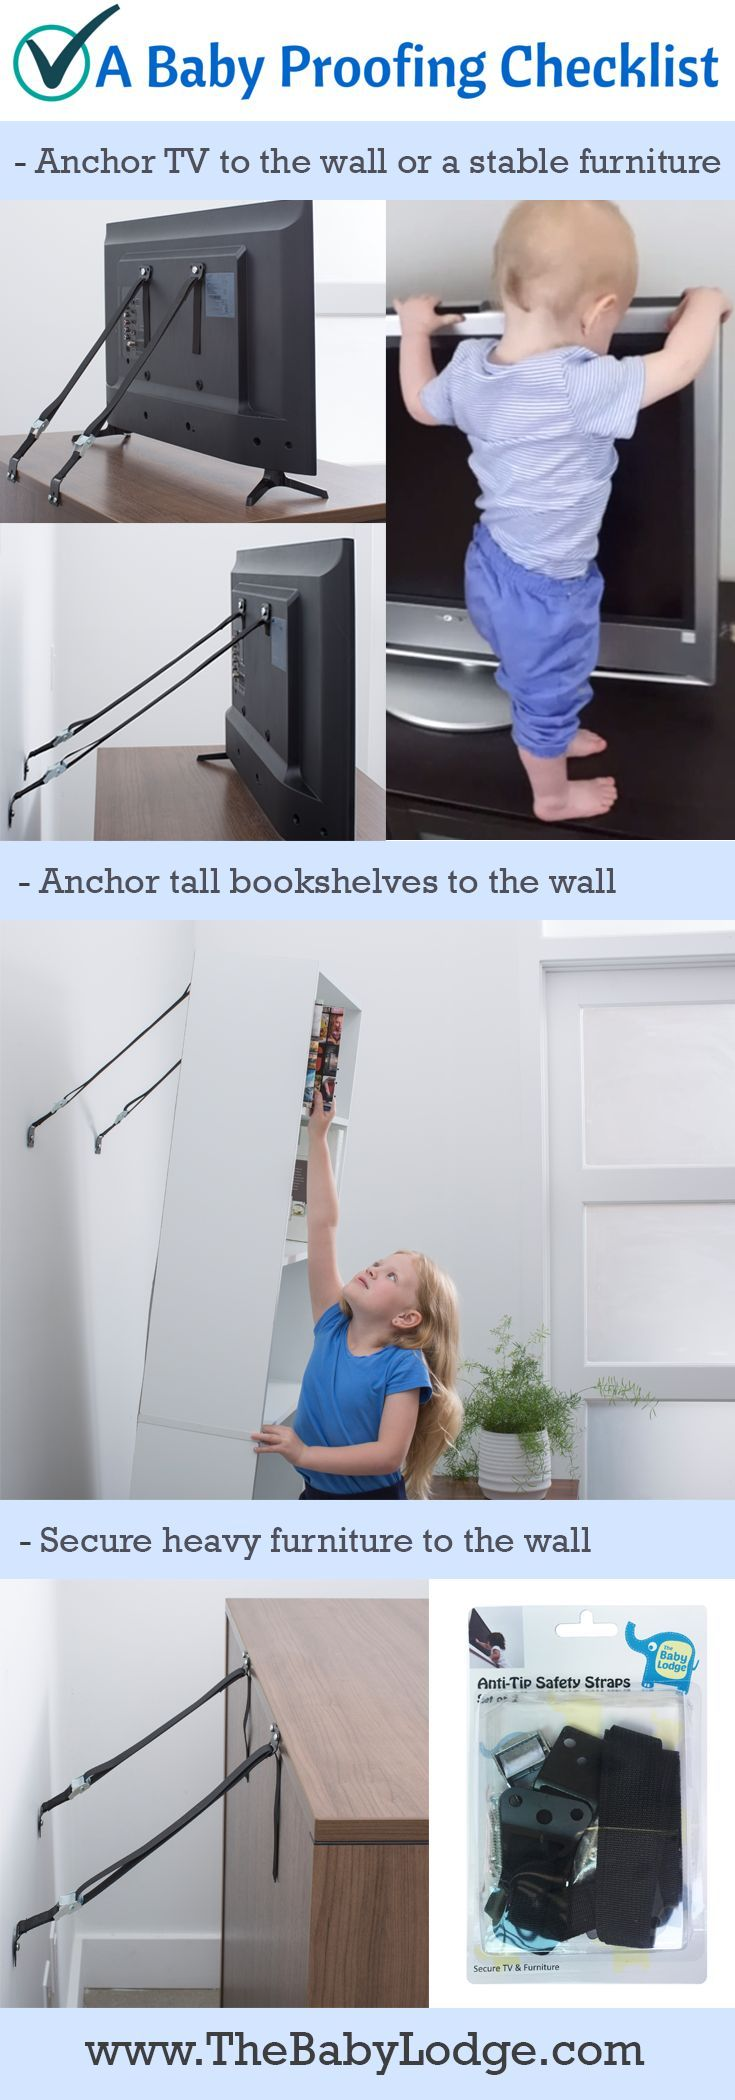 Make use of anti-tip straps to anchor furniture (such as dressers and bookshelves) and TV to the wall to avoid accidents due to toppling/tipping of the TV and furniture. Read on for more tips and information on baby proofing your home. Save the pin to keep the baby proofing checklist handy.